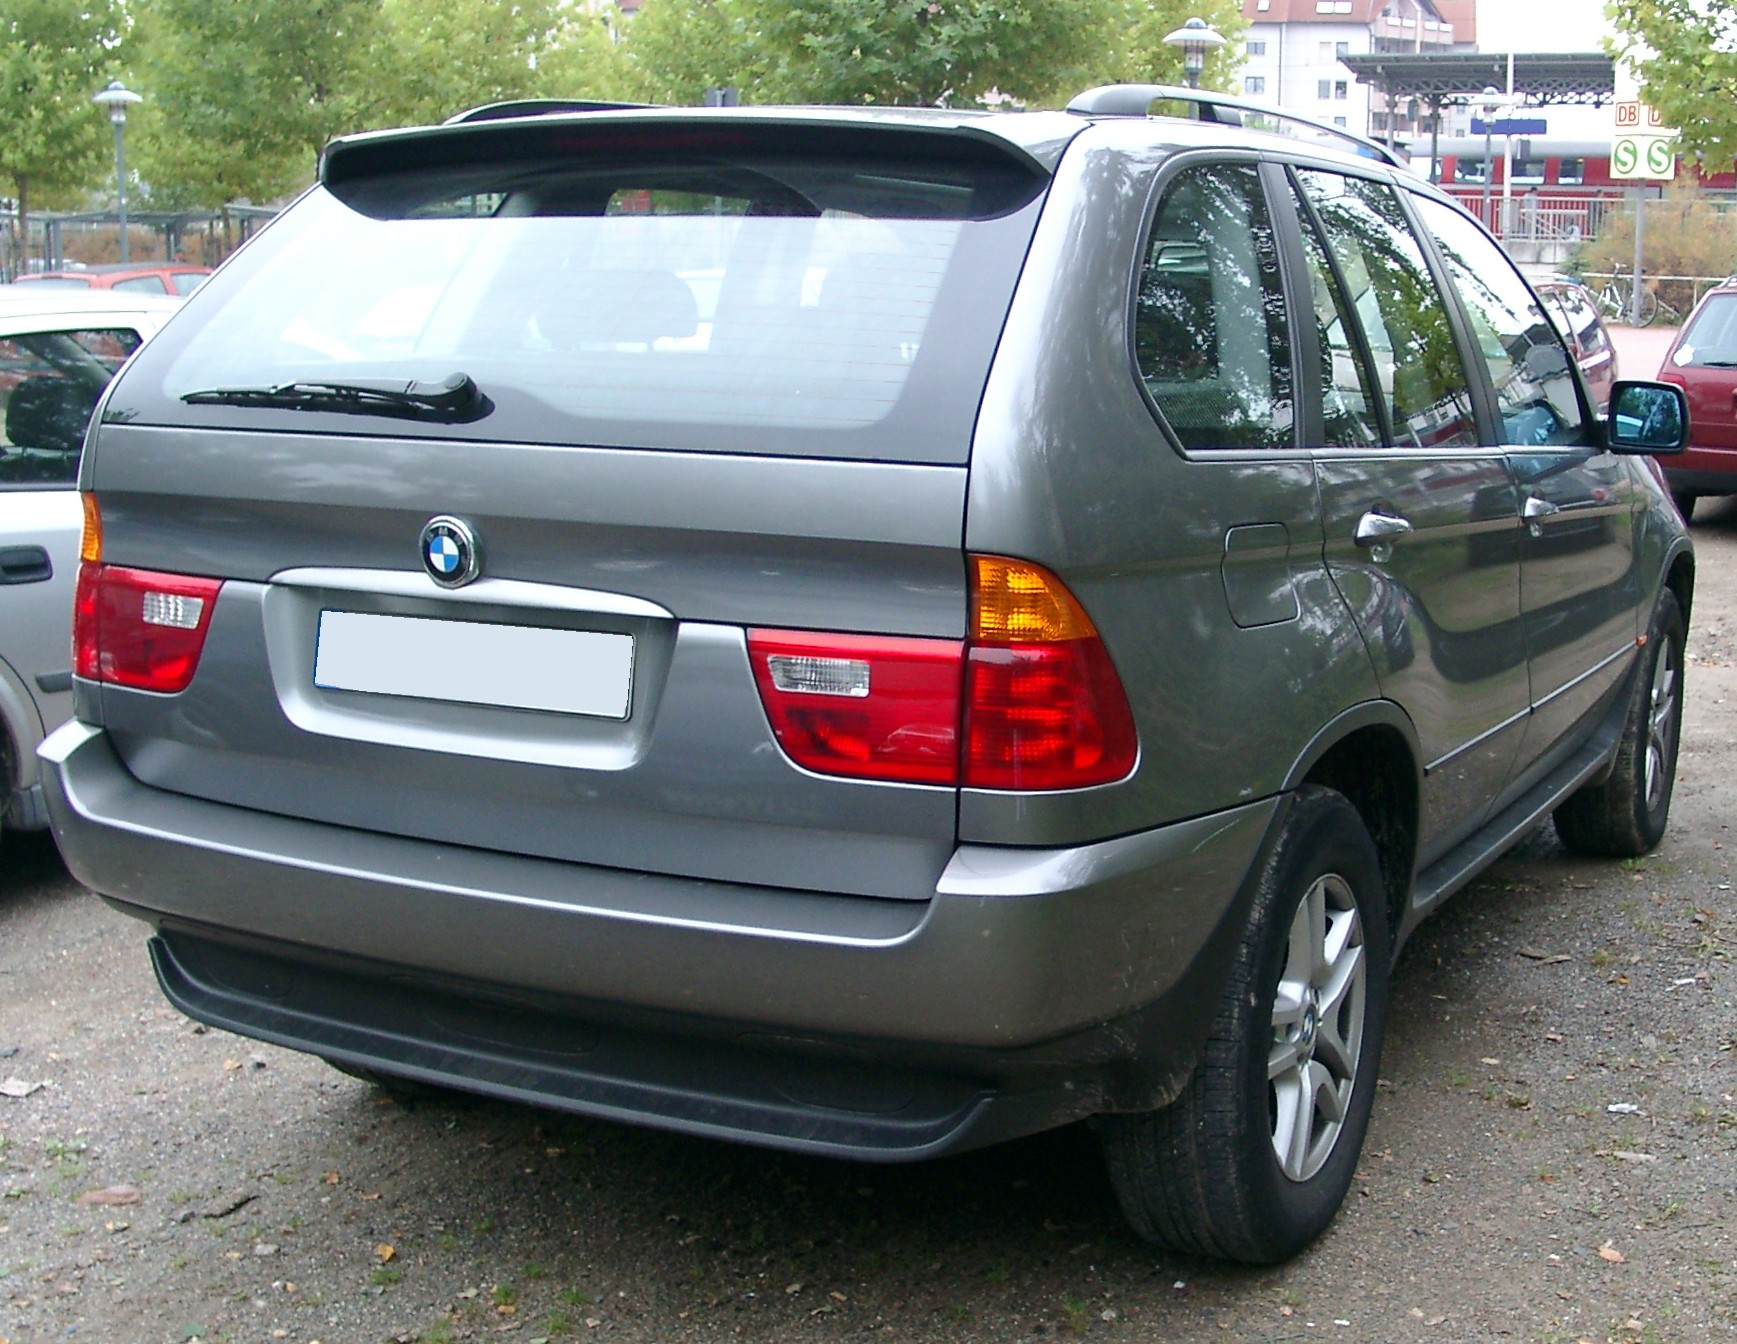 File Bmw X5 Rear 20071002 Jpg Wikimedia Commons